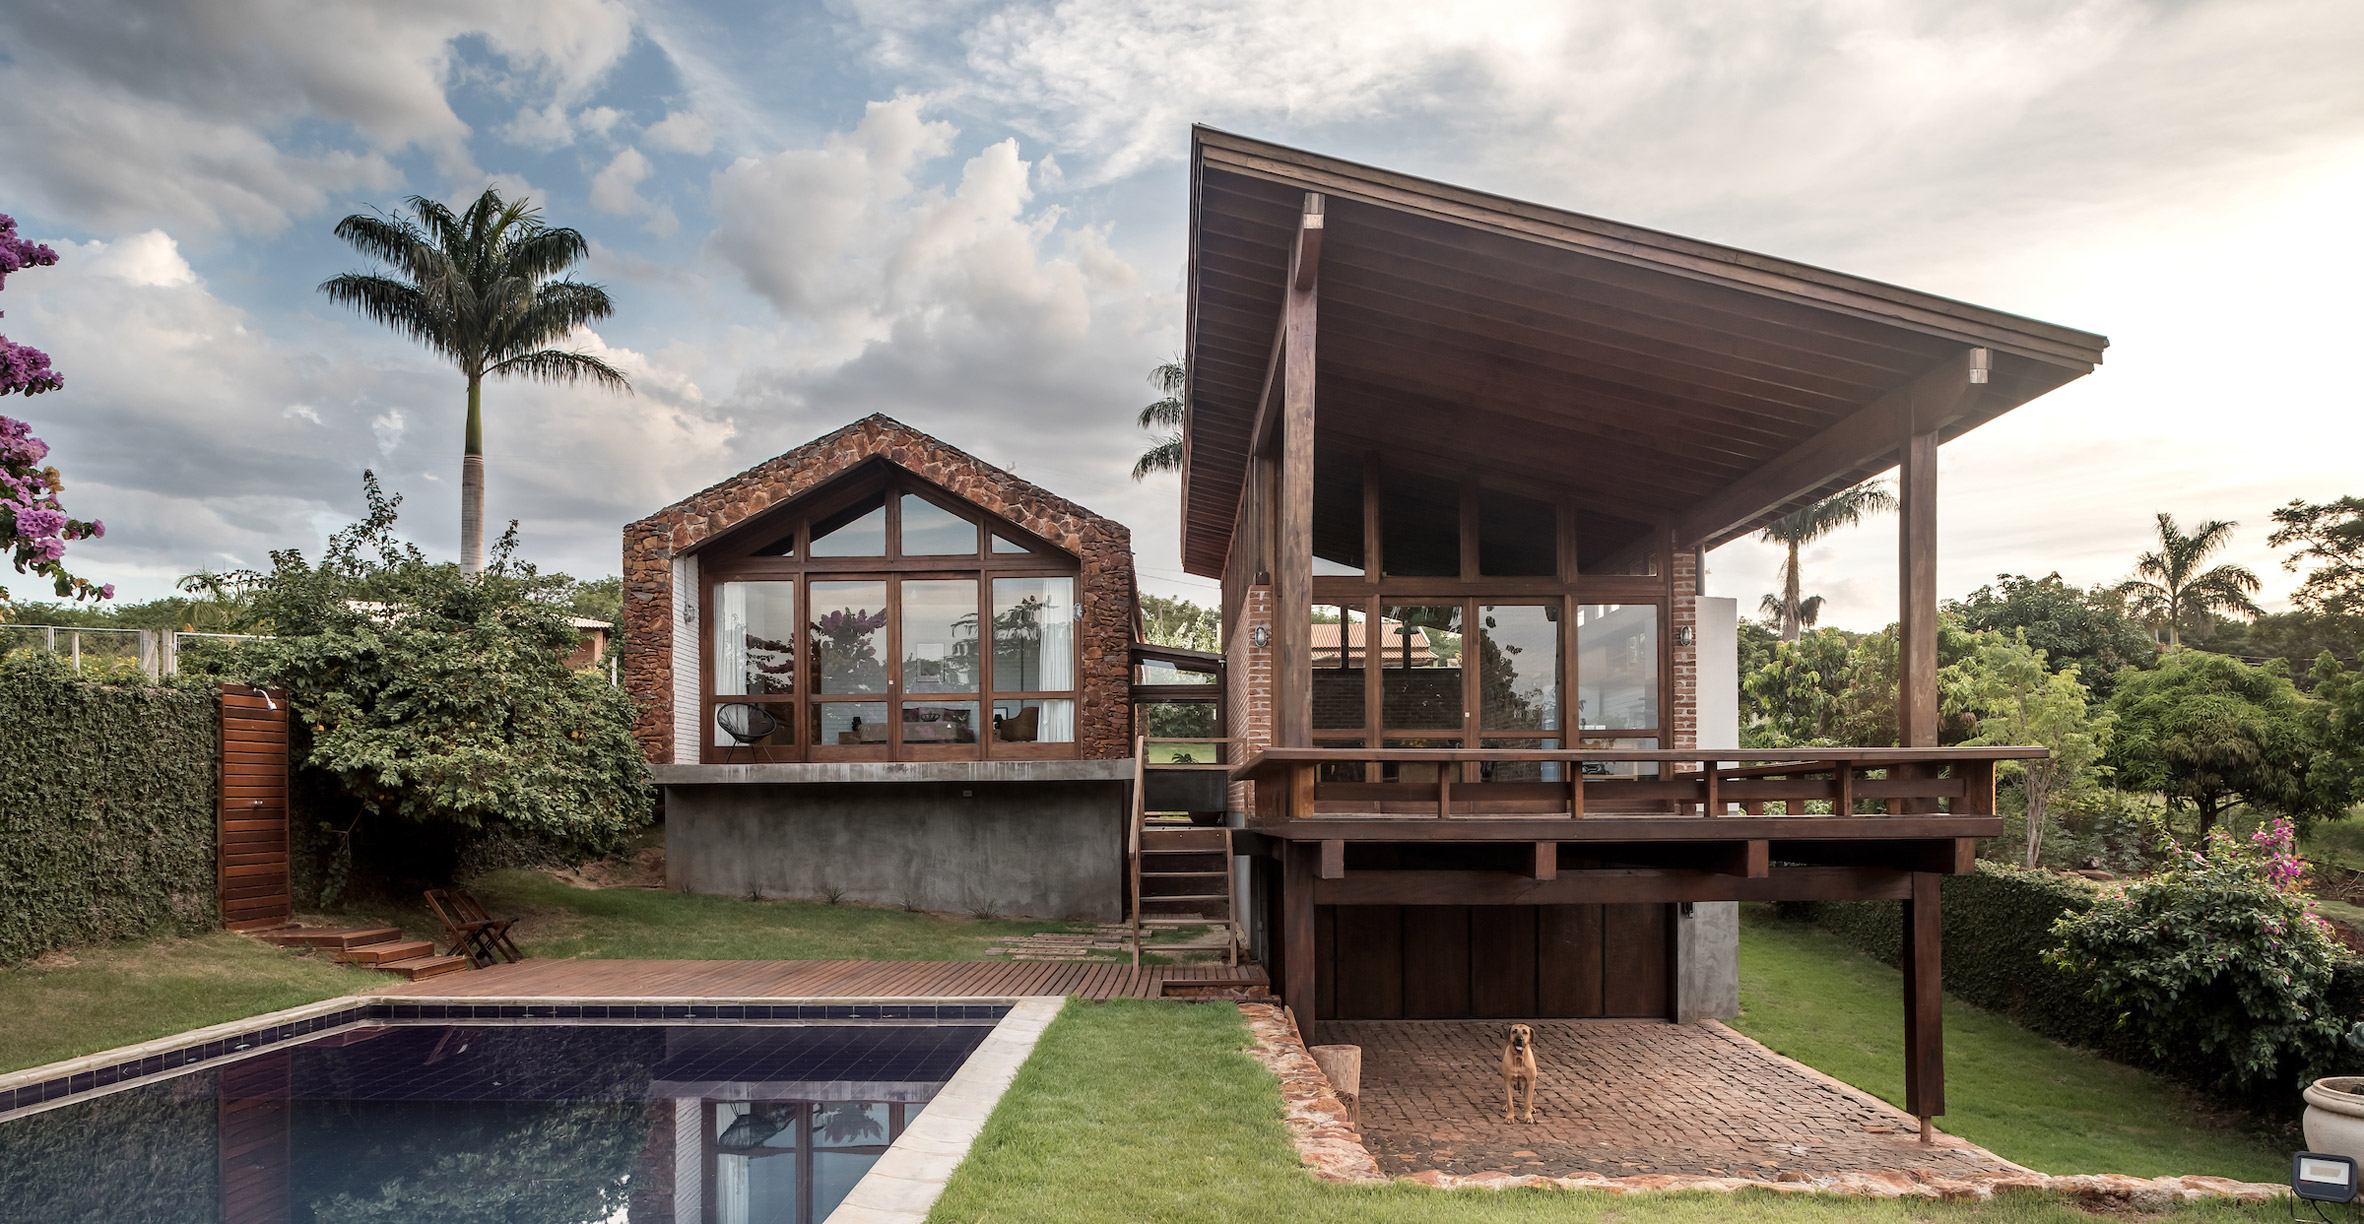 Lake house in Brazil by Solo Arquitectos